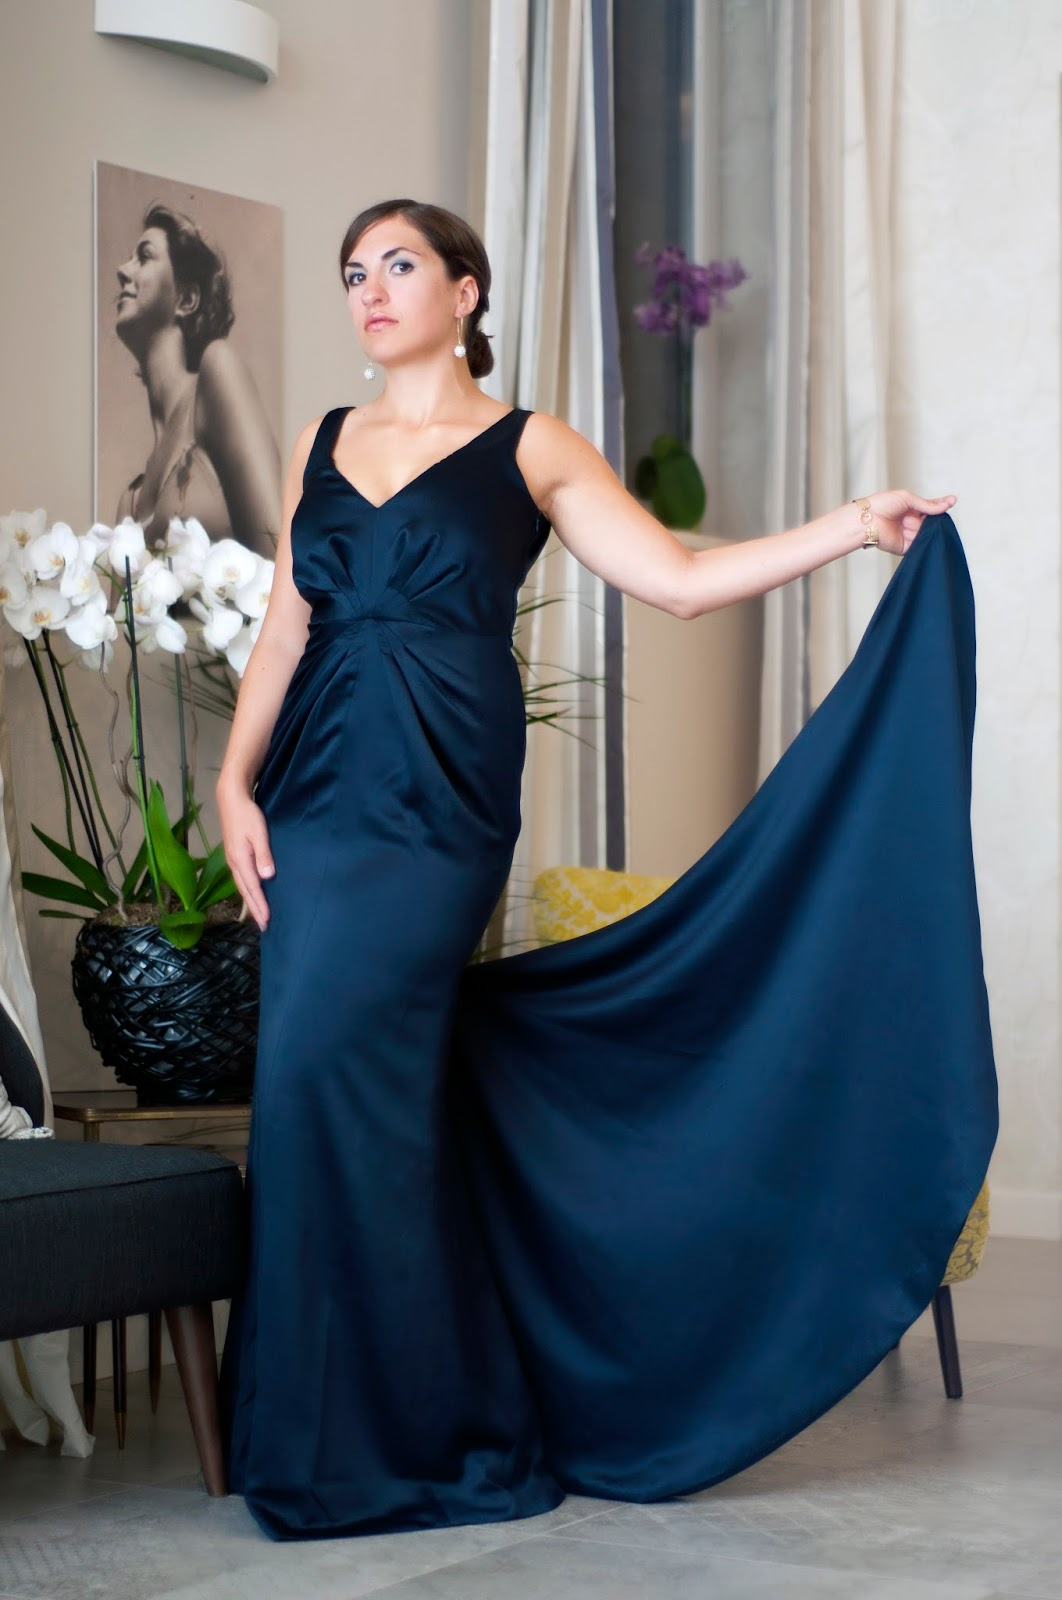 Ready To Hit The Ballroom – Langes Abendkleid mit Schleppe – Julia Jamei